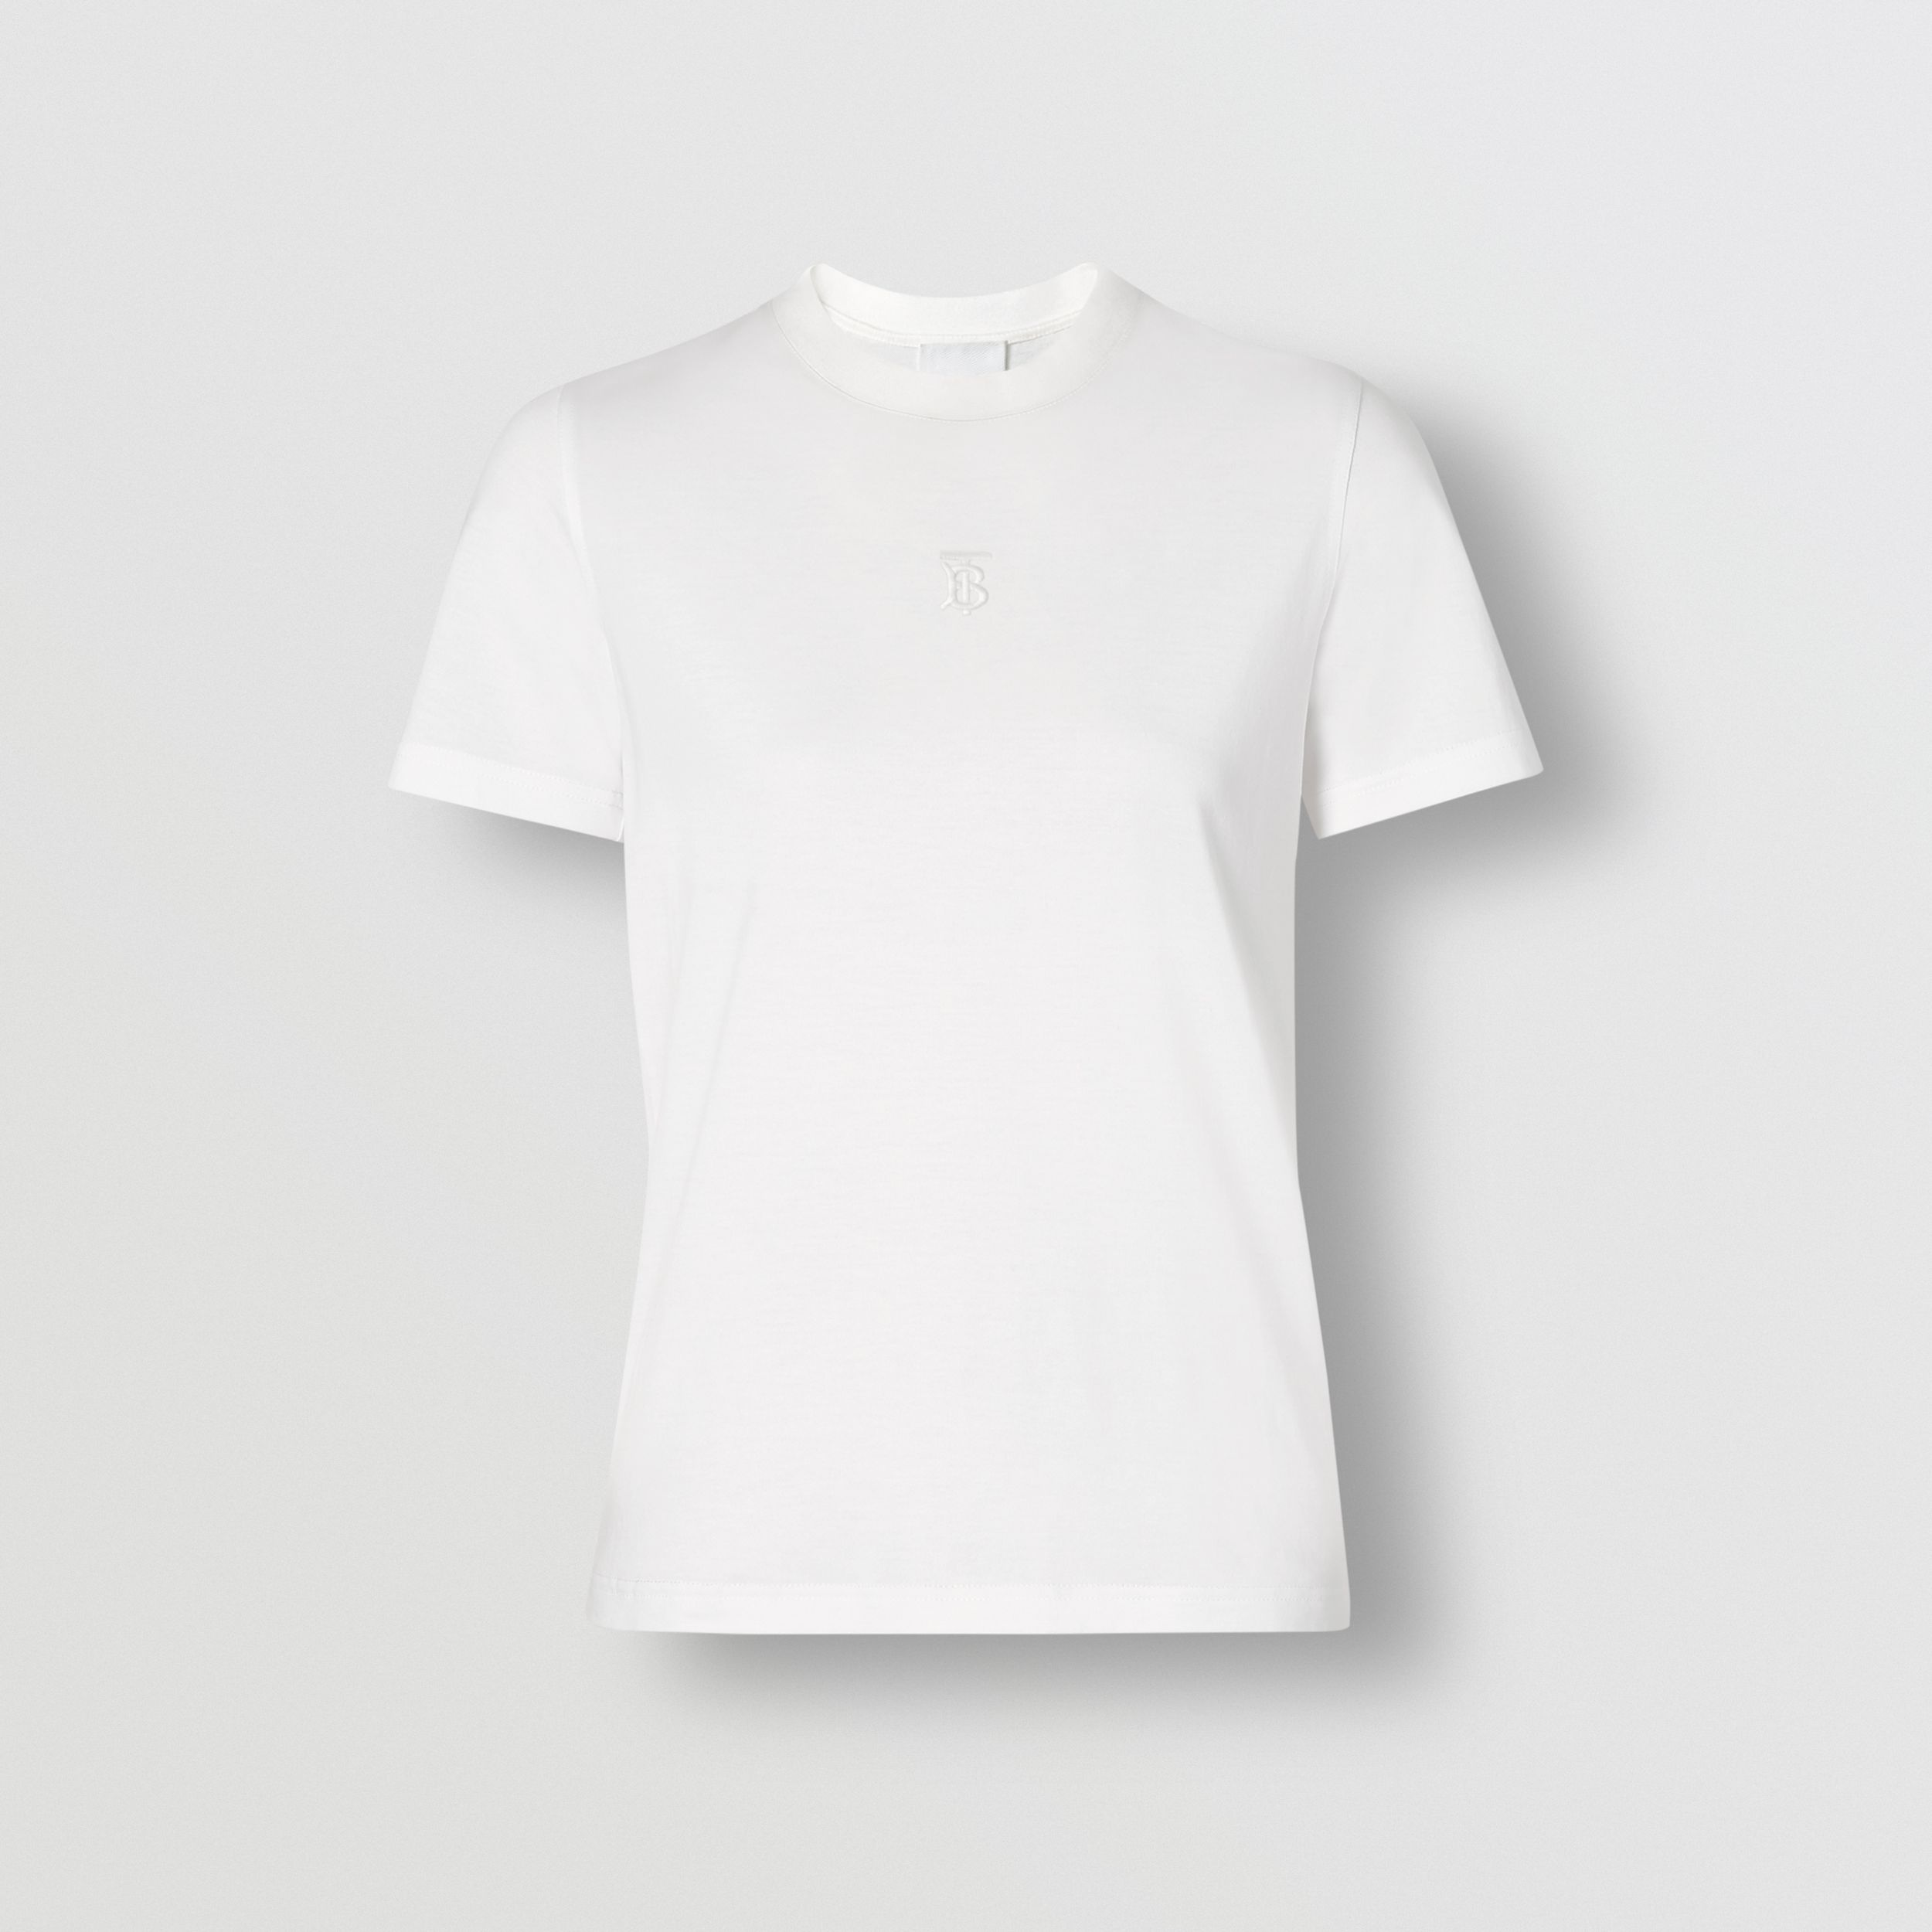 Monogram Motif Cotton T-shirt in White - Women | Burberry - 4